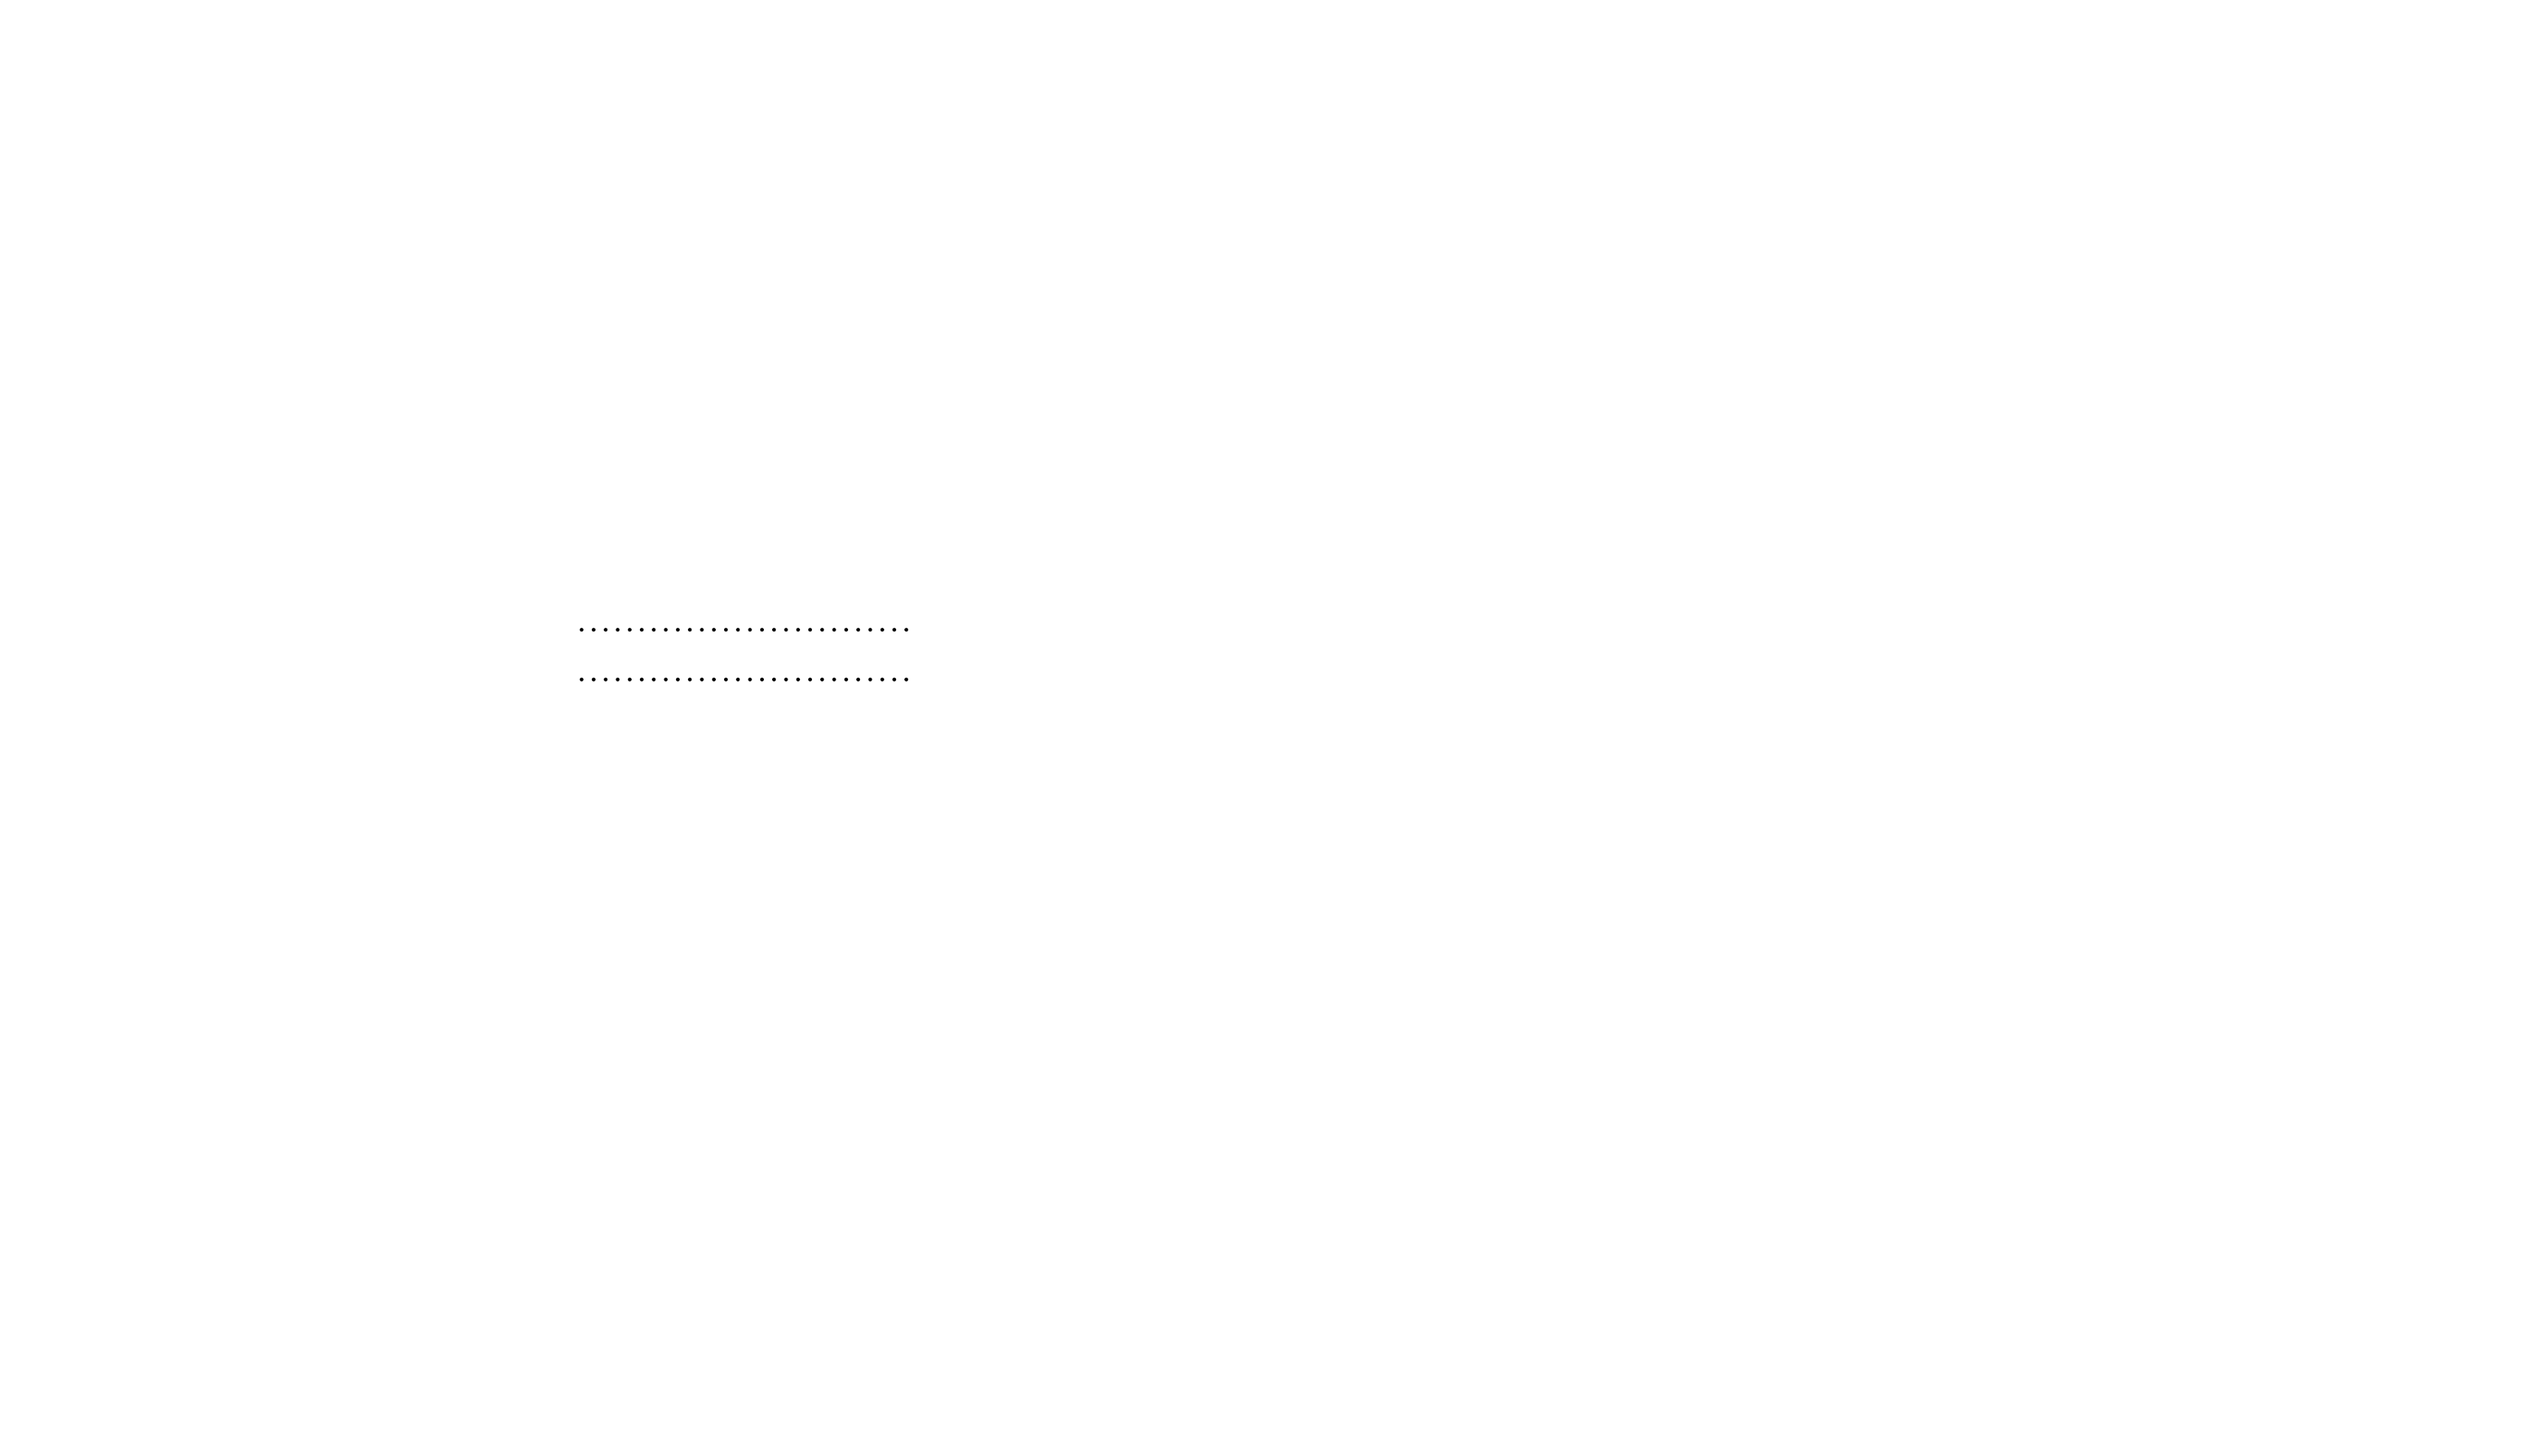 Montreal World Film Festival 2018 Official Competition